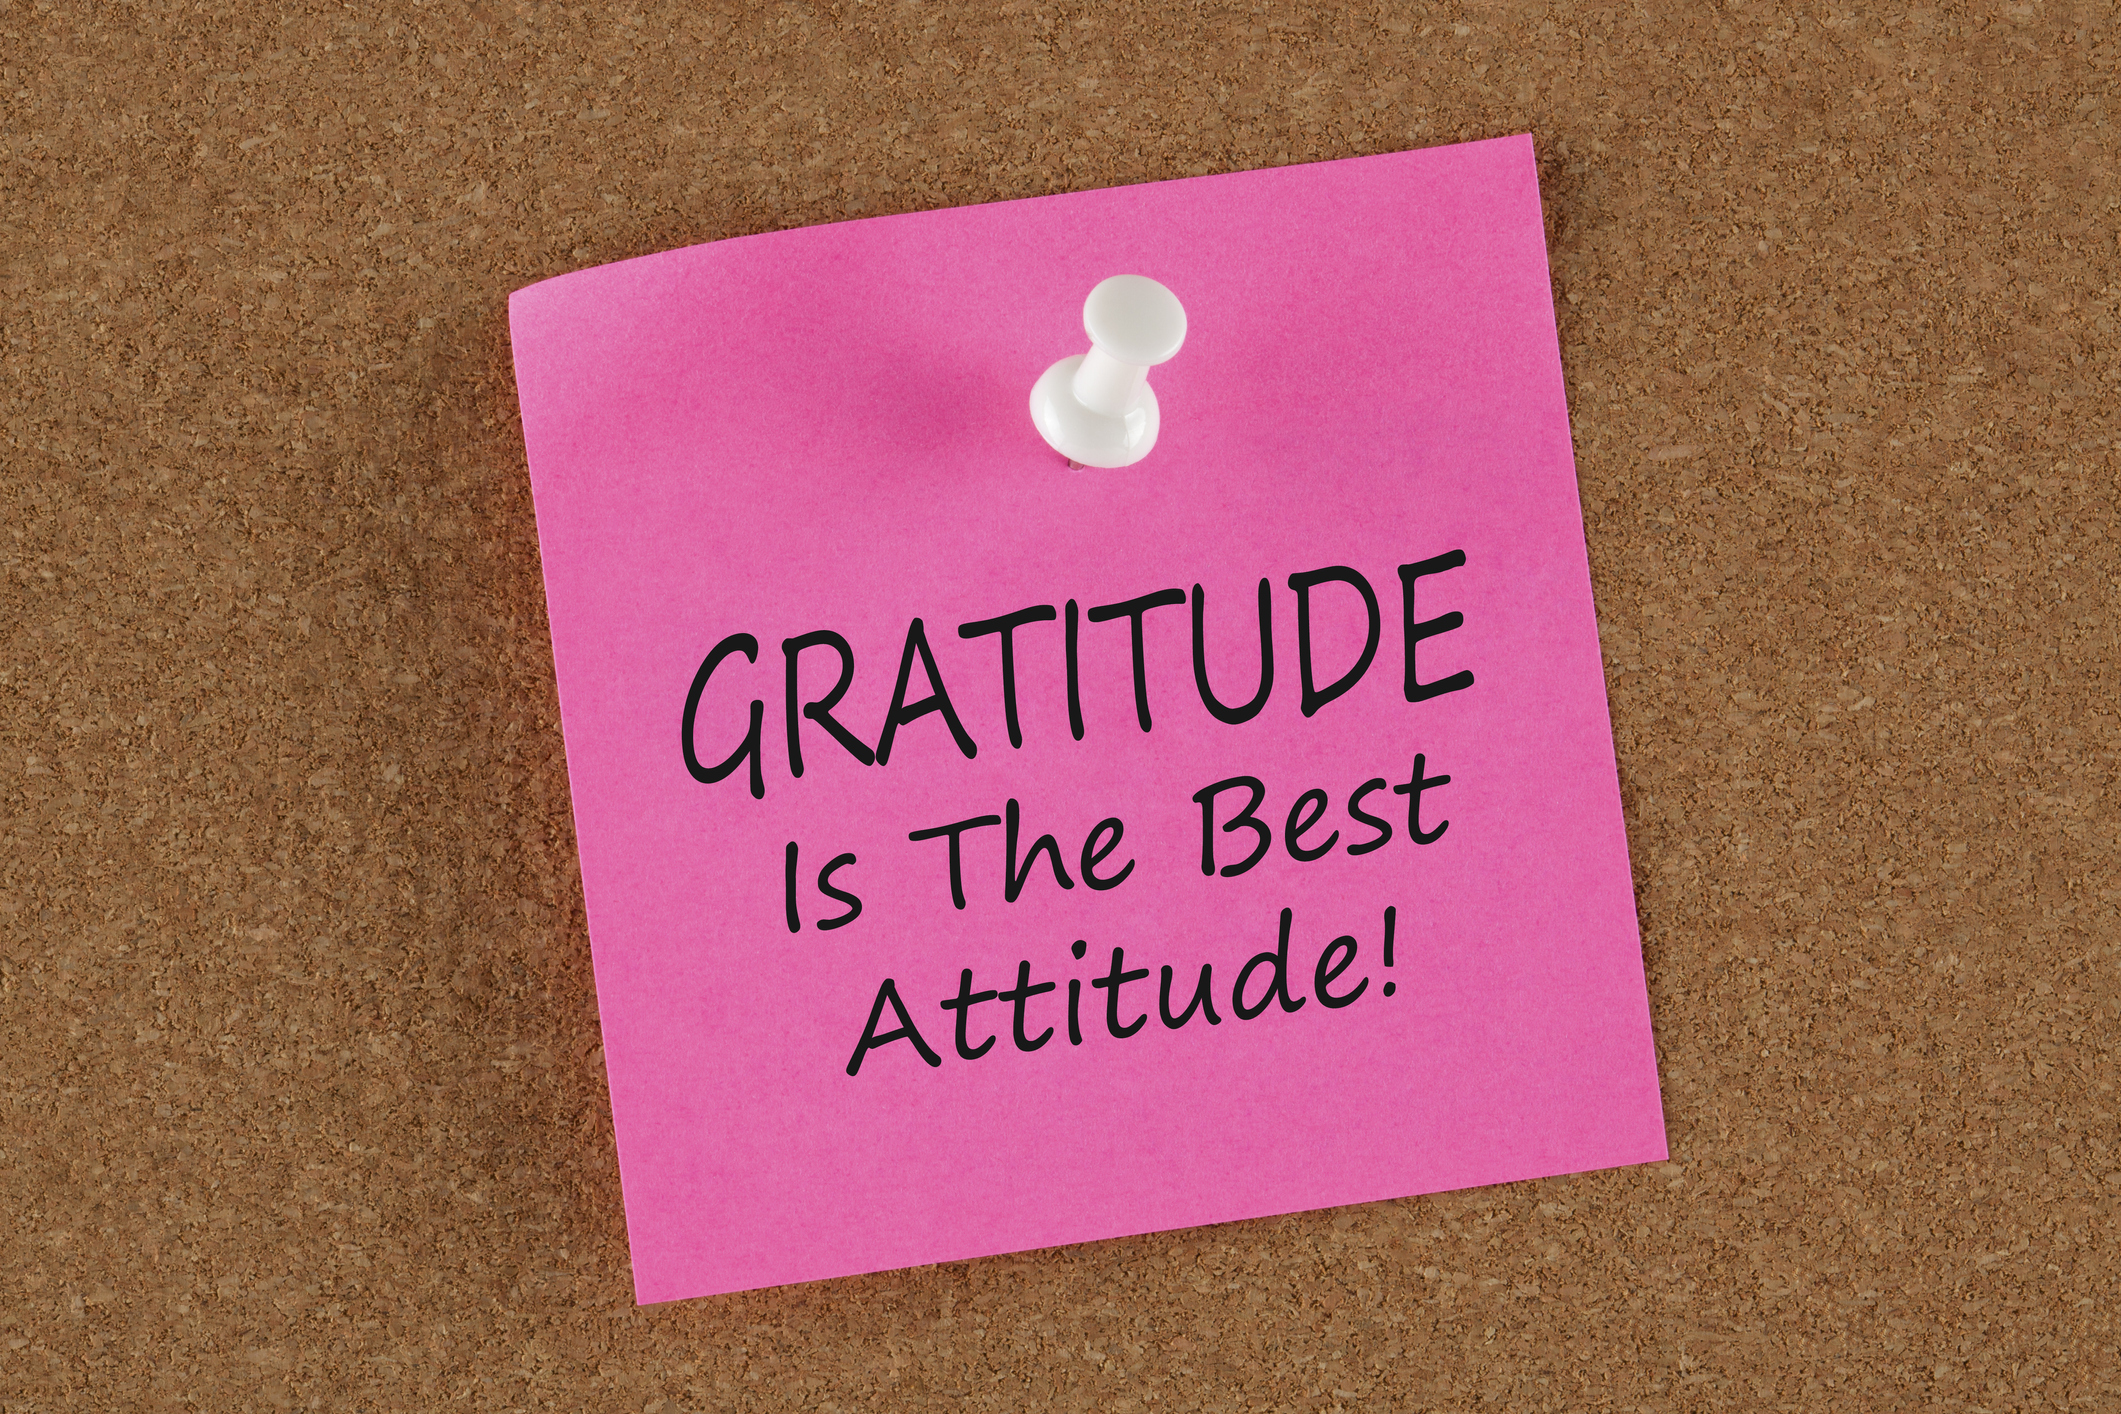 Time to Add Gratitude to Your Life—And Your Company's Culture!